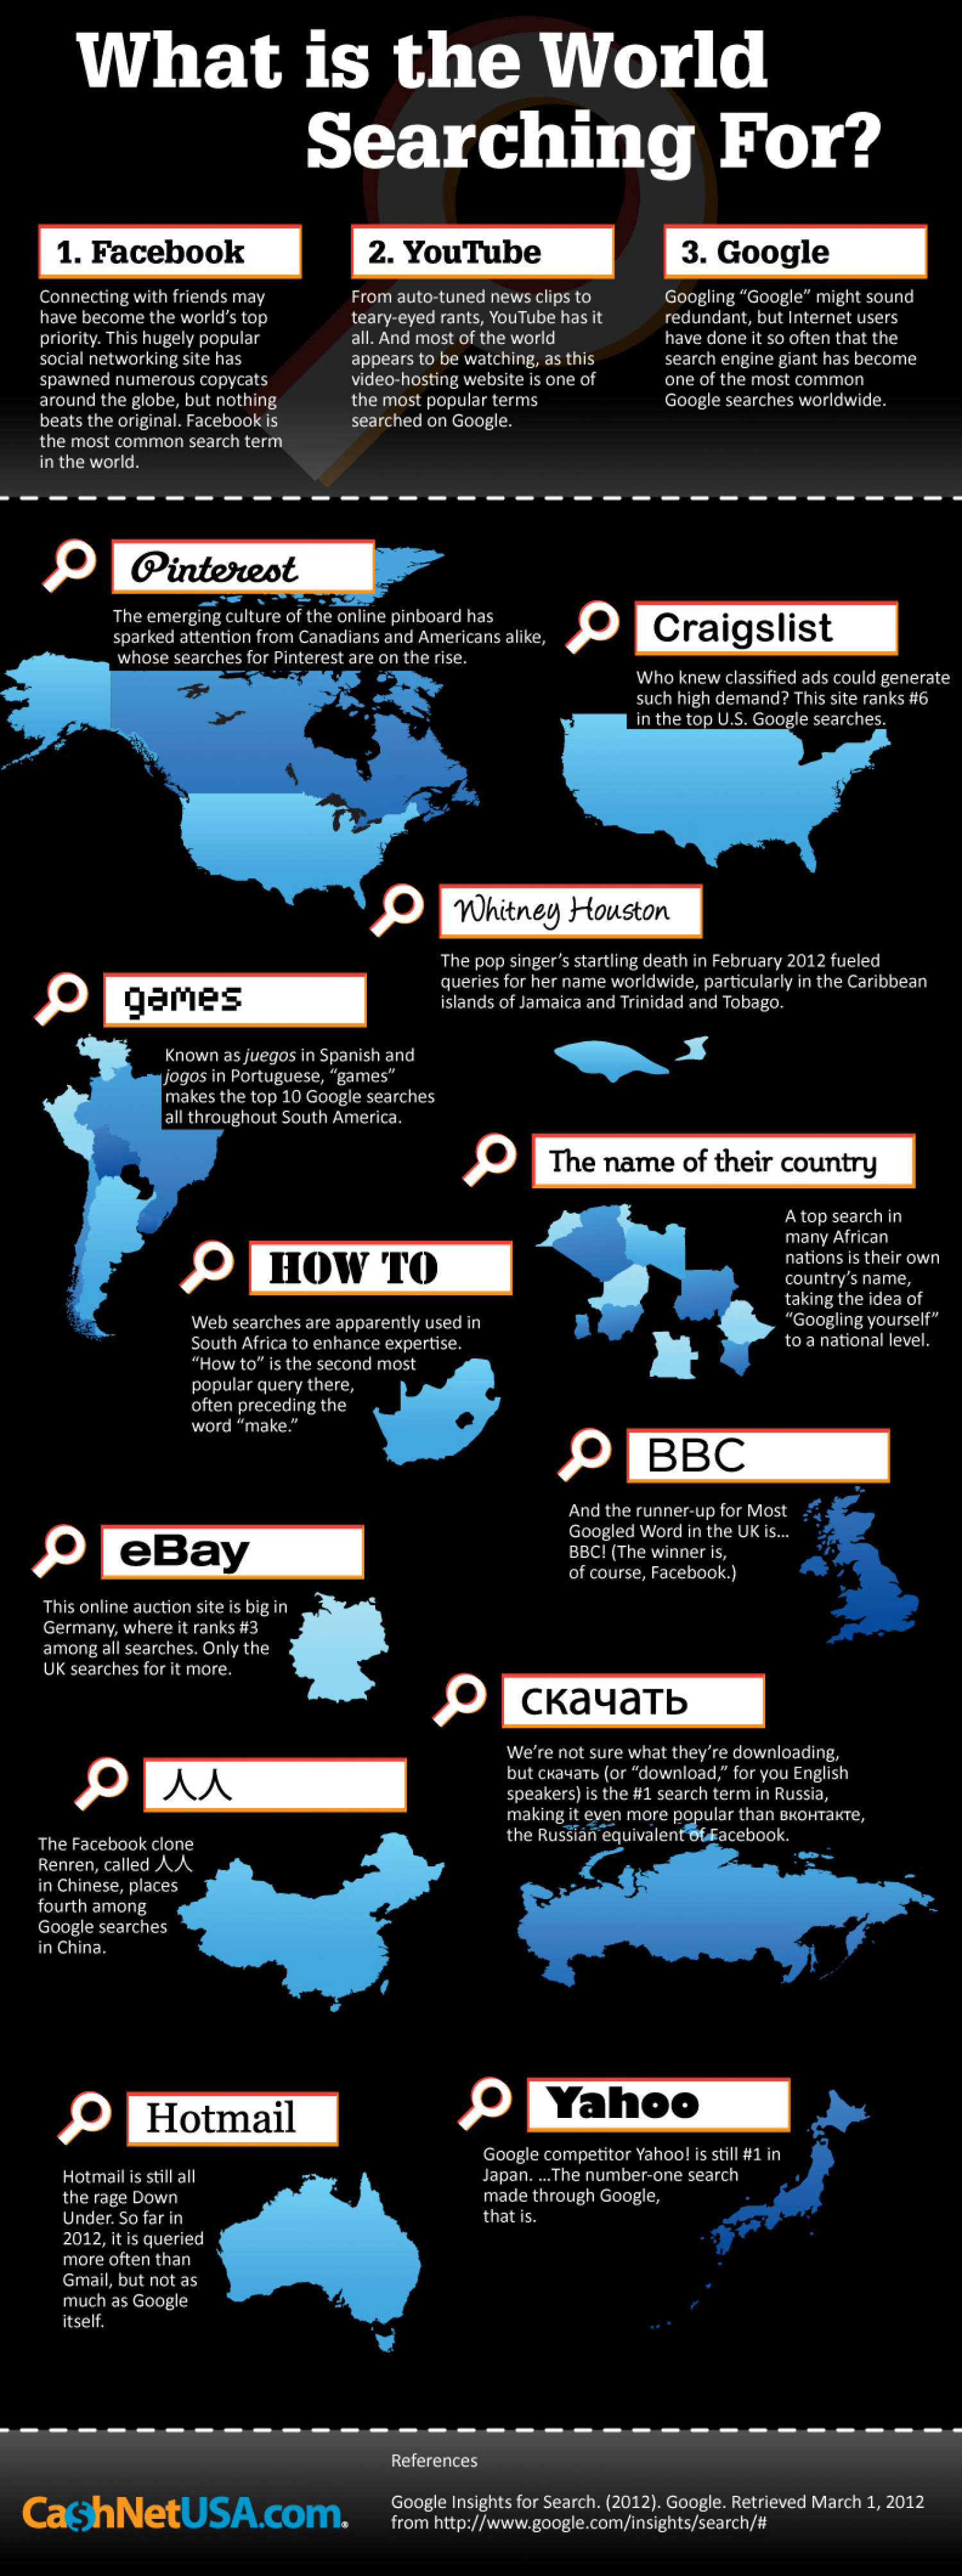 What is the World Searching For? Infographic